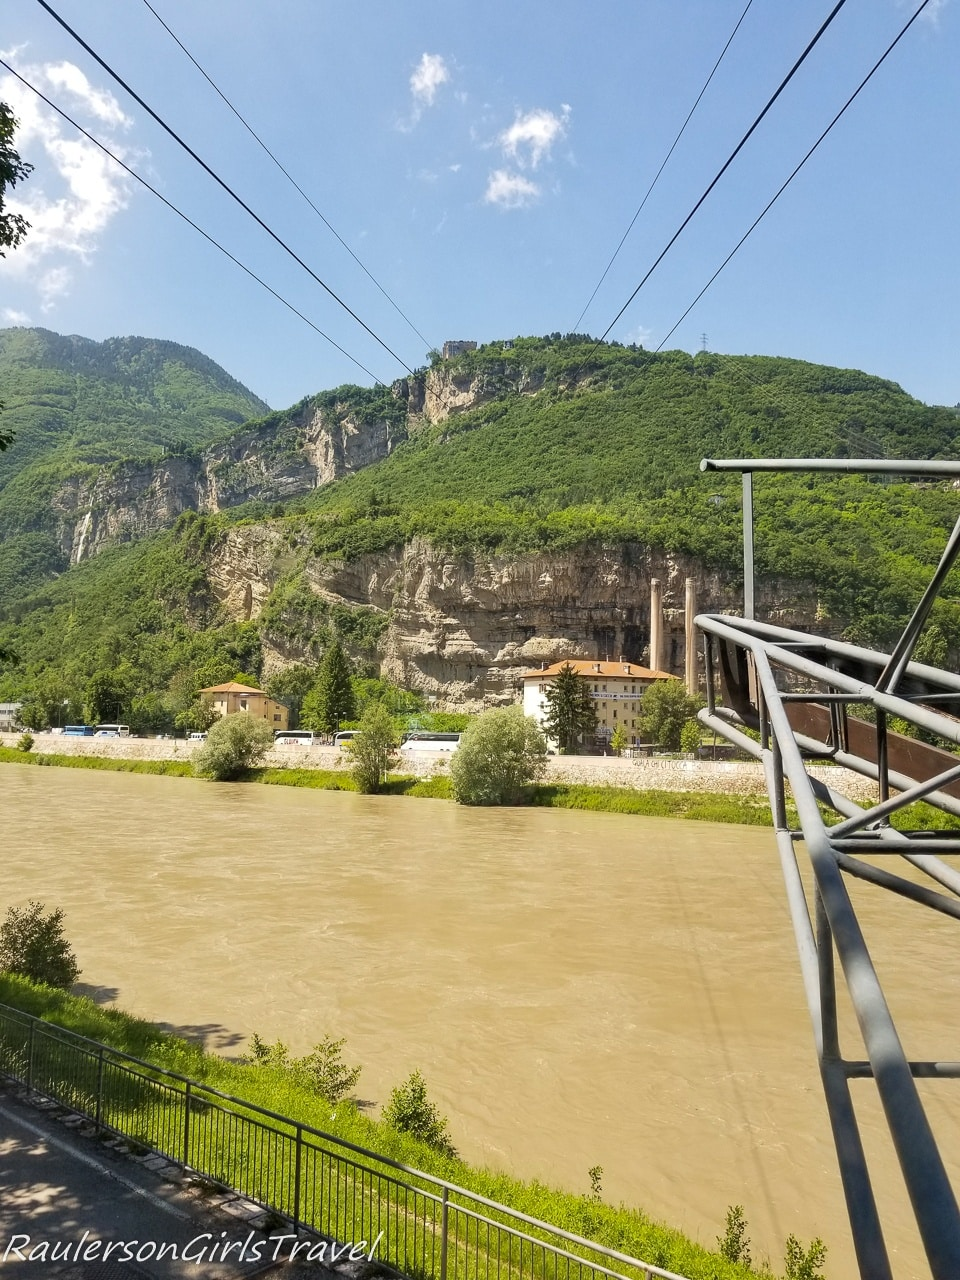 View from the Trento Cable Car at the station